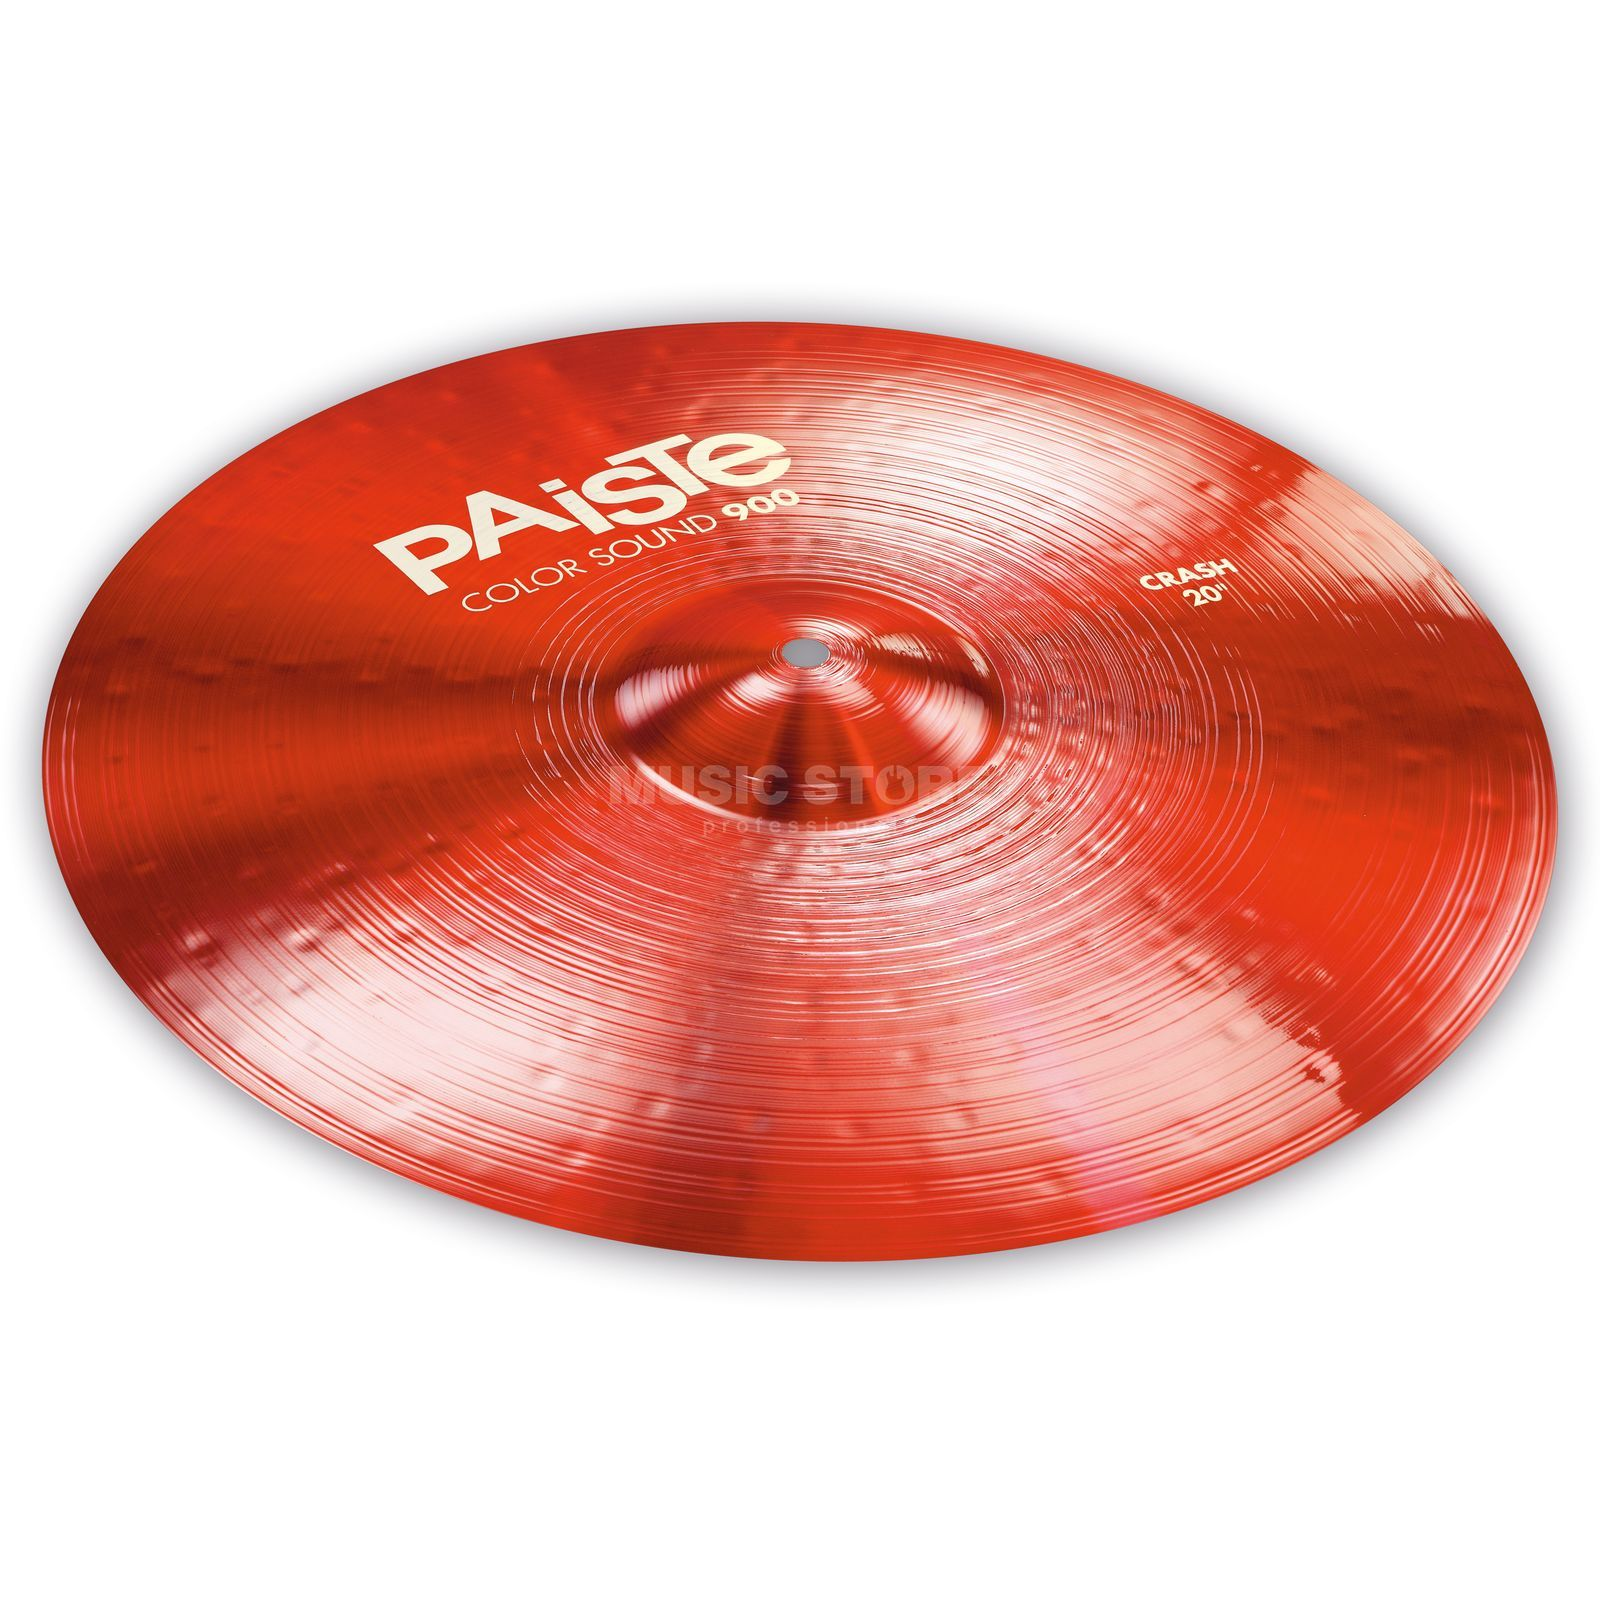 "Paiste CS 900 Crash 20"" Color Sound Red Produktbild"